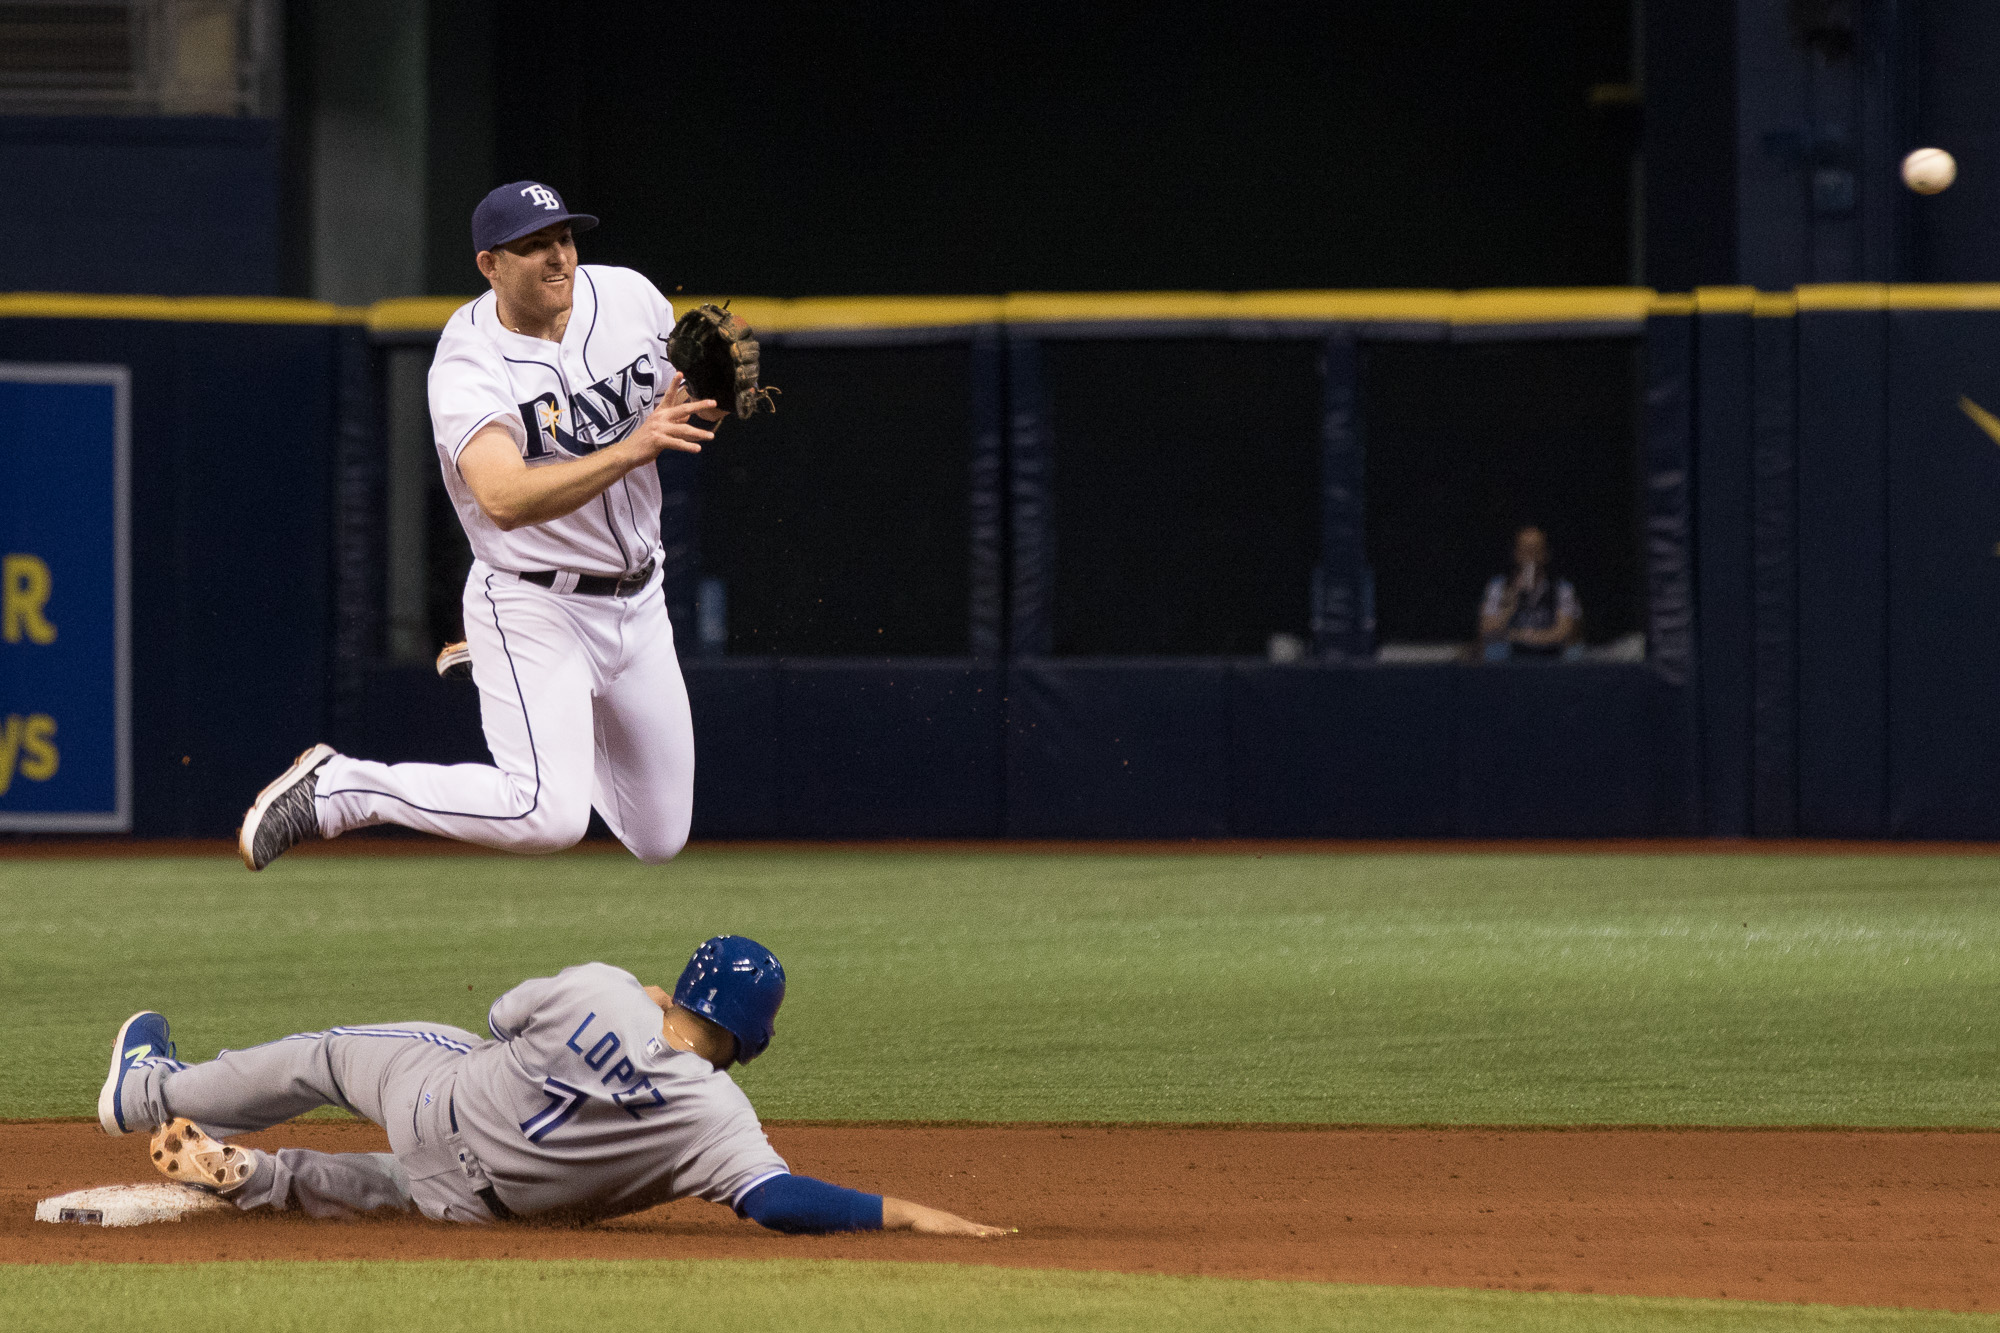 Brad Miller gpes airborne to get a double play./STEVEN MUNCIE